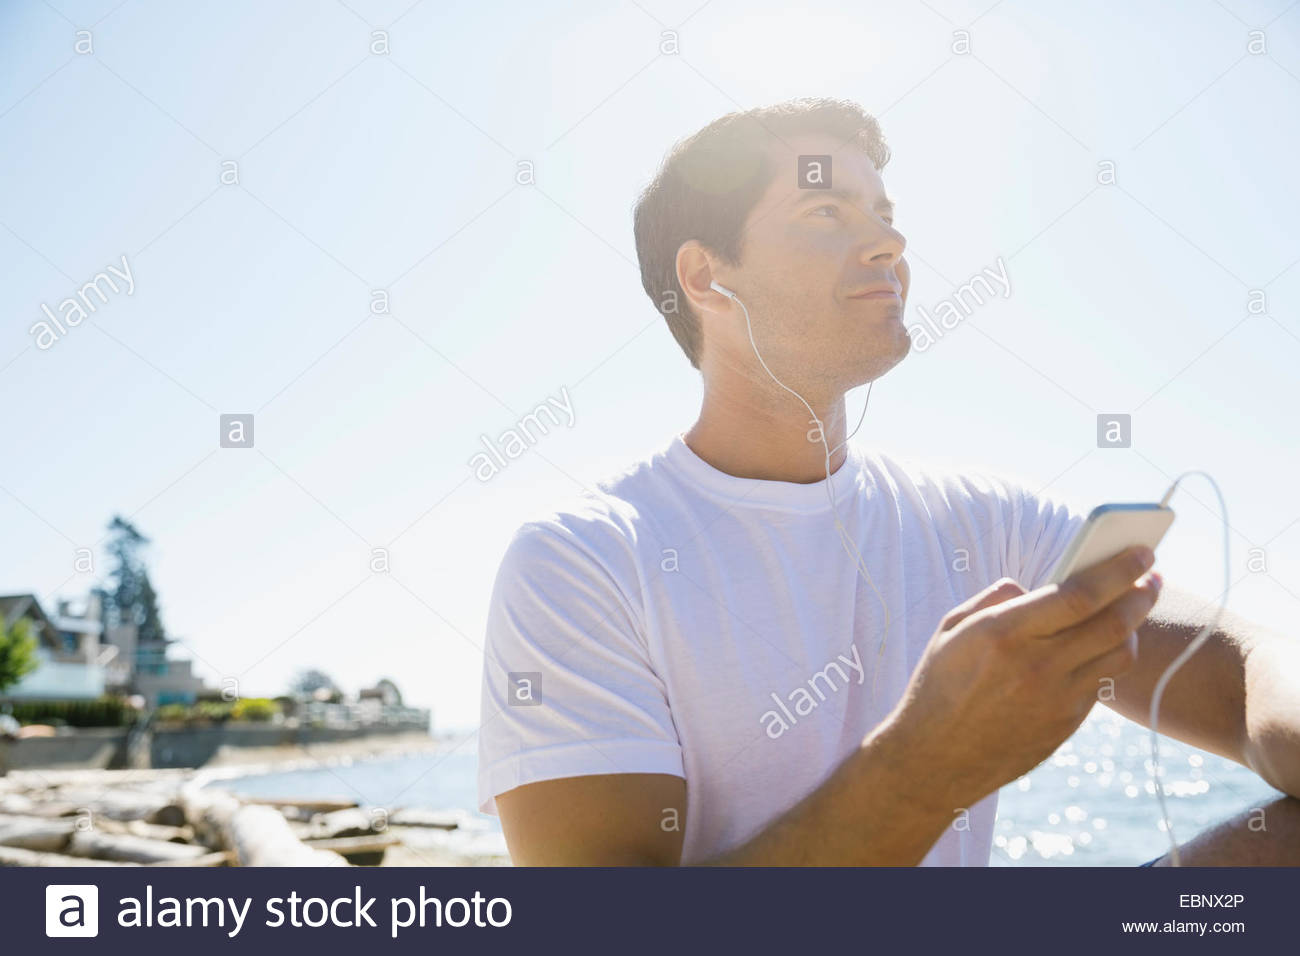 Runner listening to mp3 player on beach - Stock Image